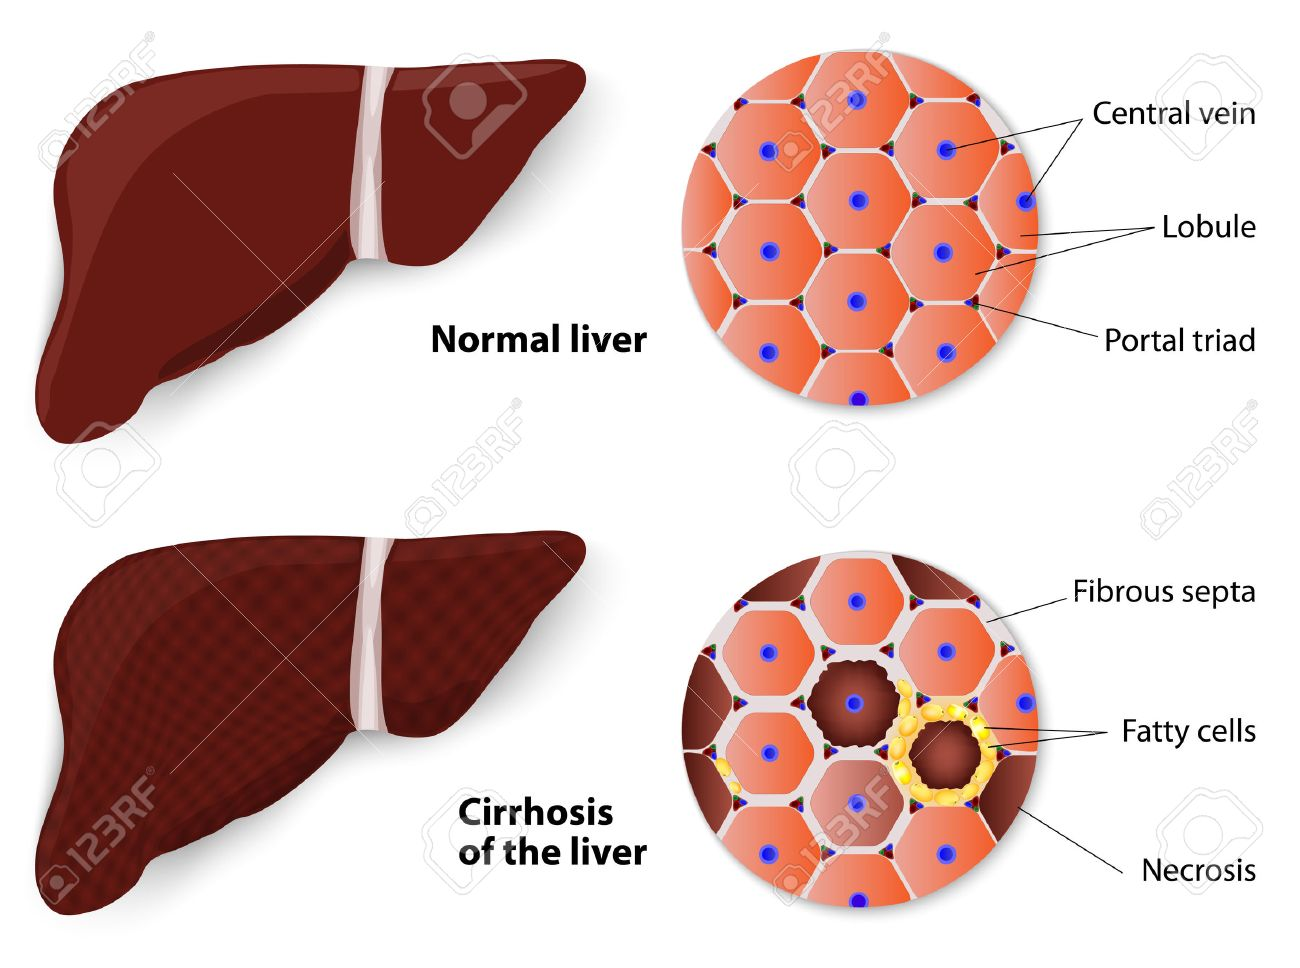 hight resolution of cirrhosis of the liver and normal liver structure of the liver vector diagram stock vector